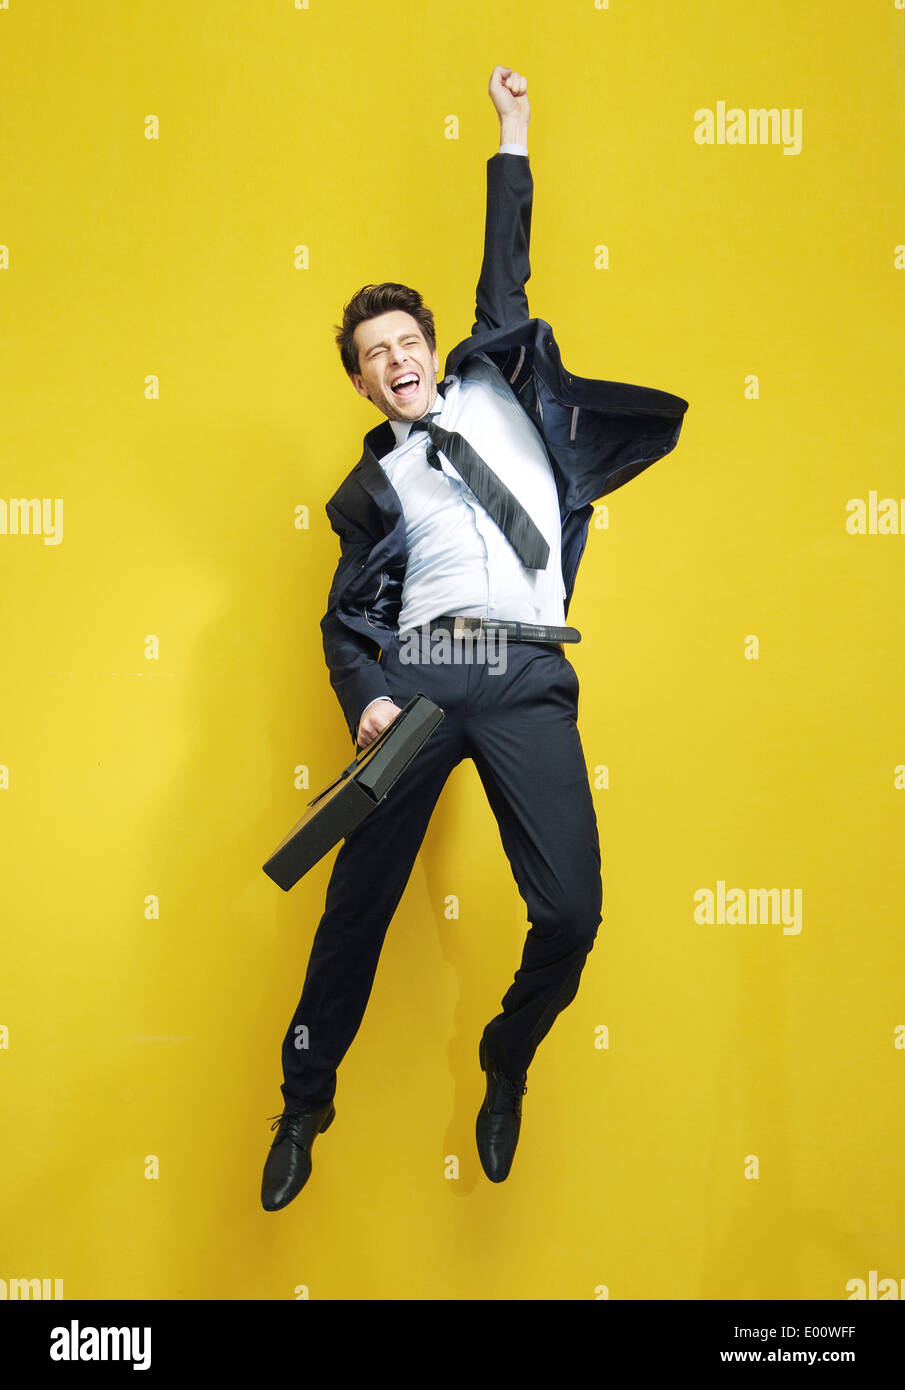 Handsome successful businessman in the victory jump - Stock Image